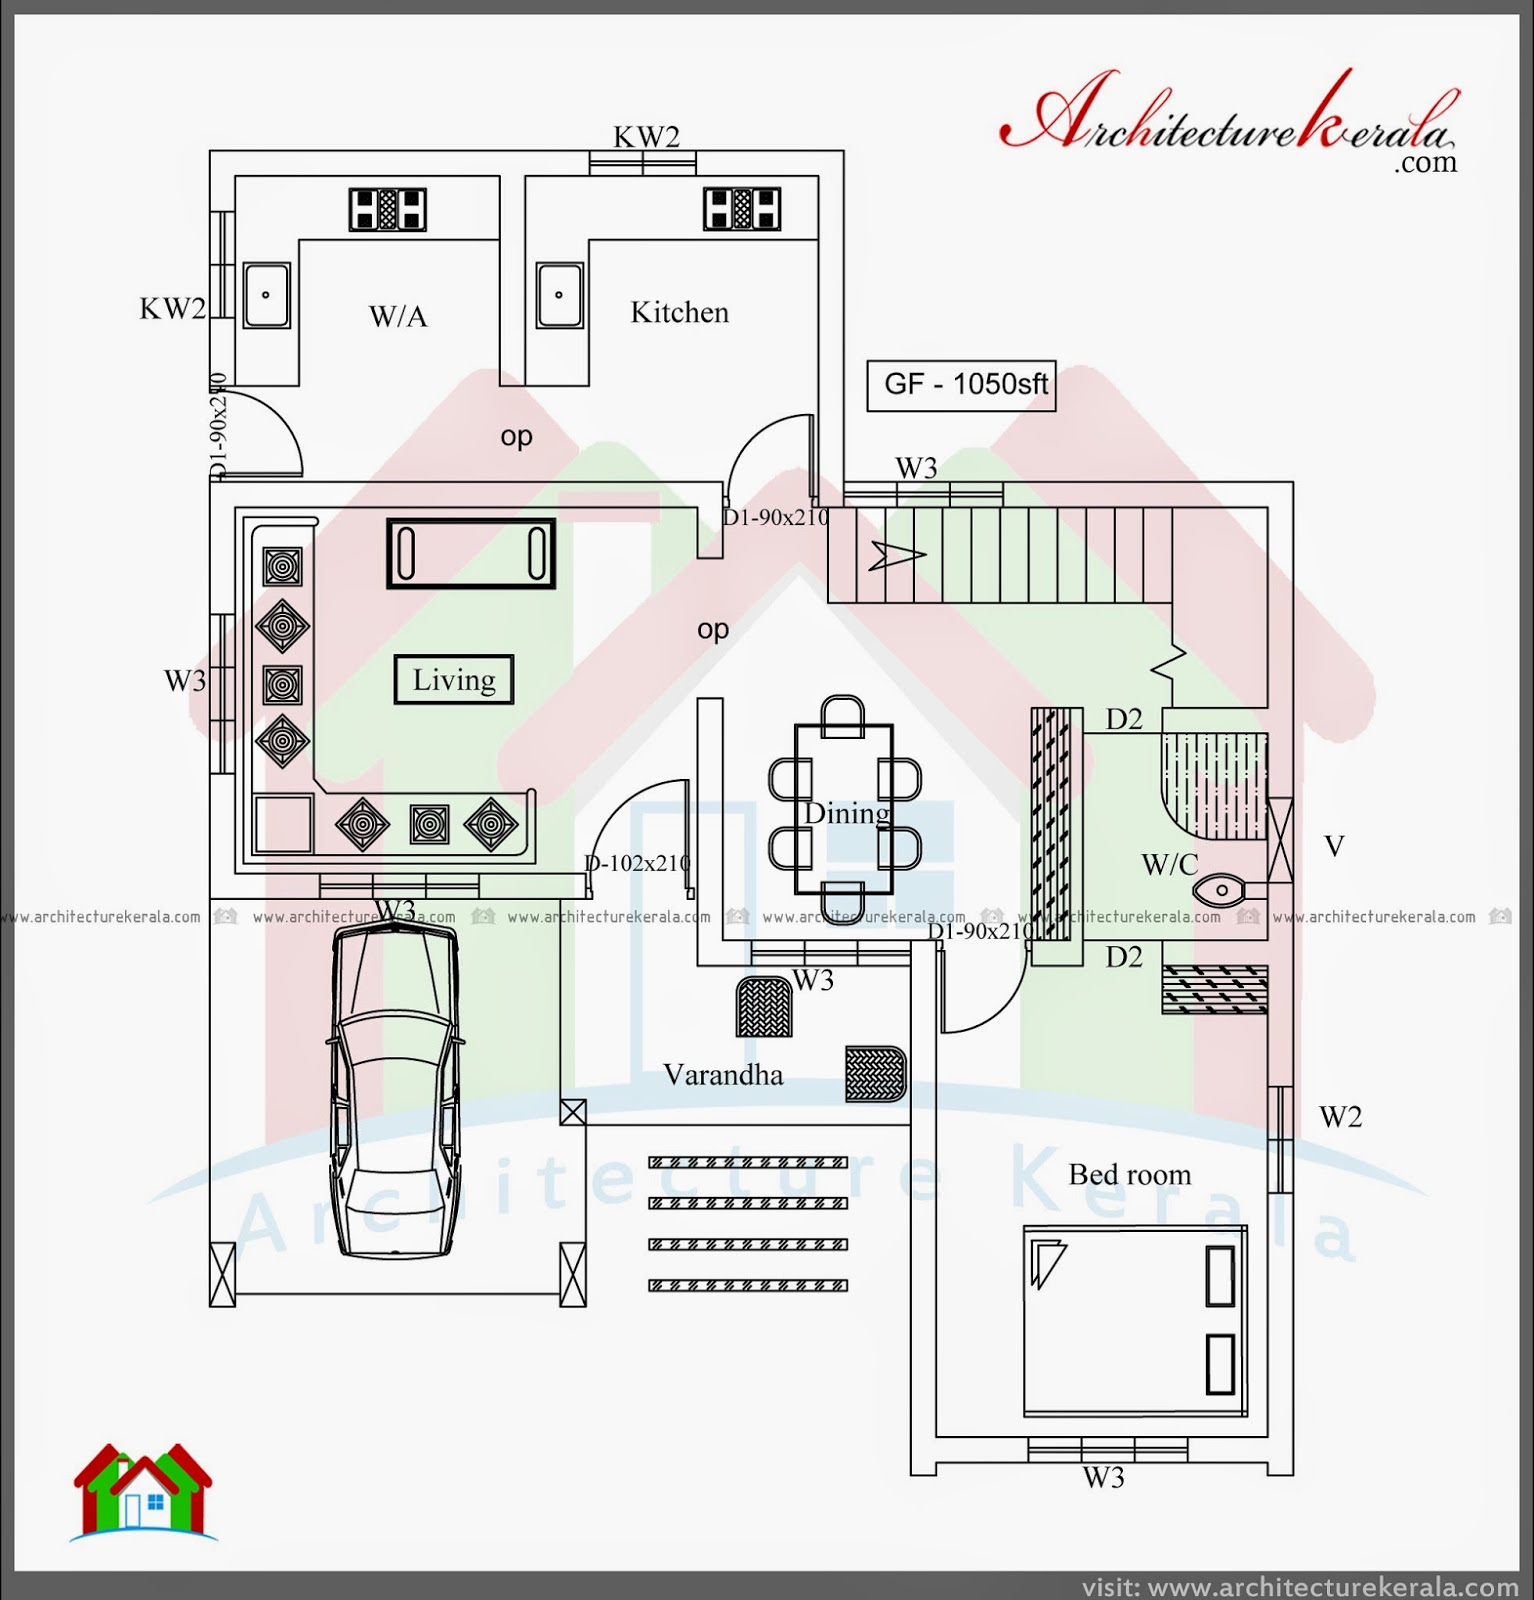 Three bedroom two storey house plan architecture kerala for Three bedroom house plans kerala style